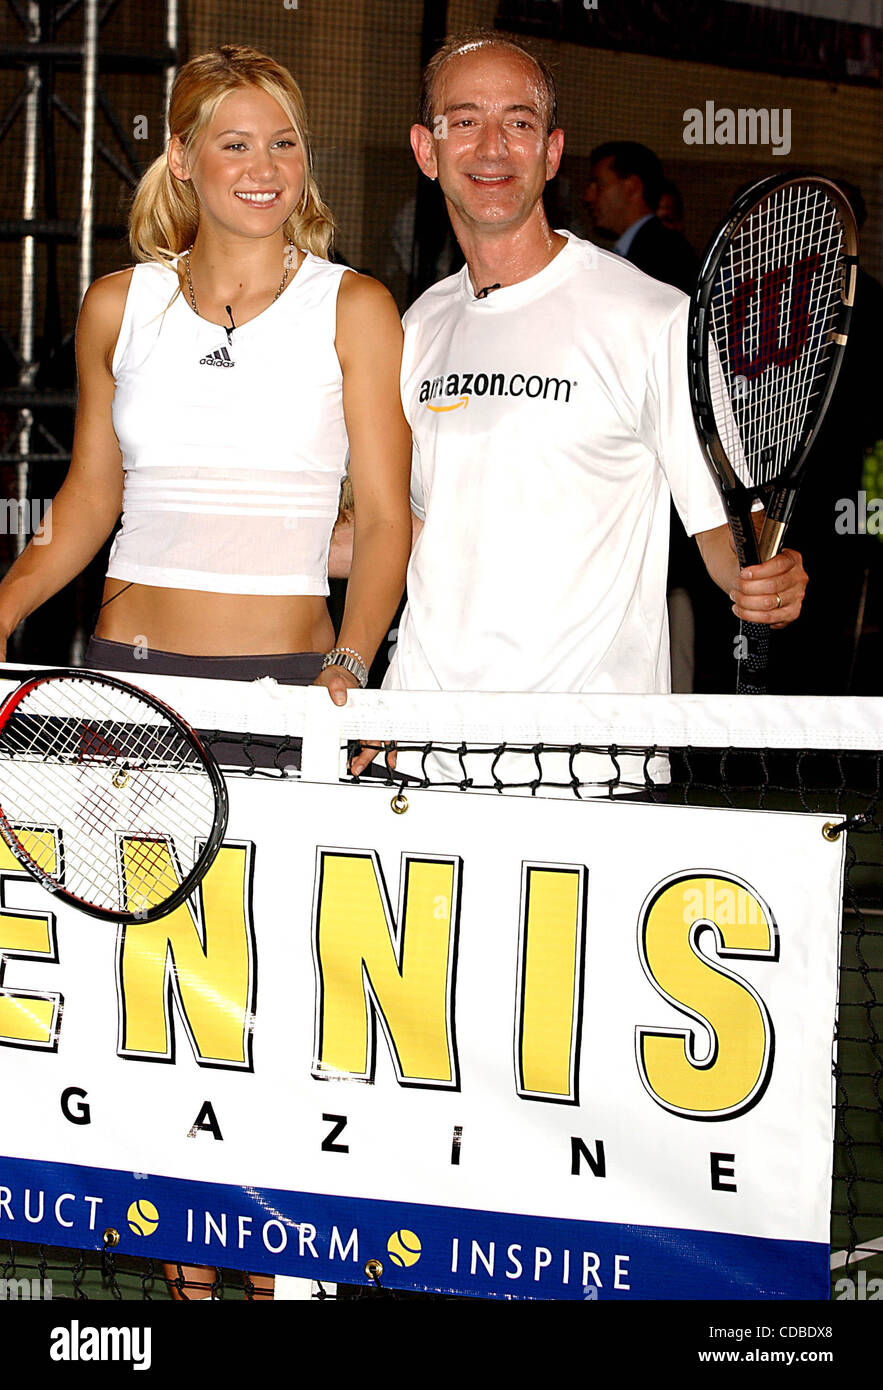 K32368AR.ANNA KOURNIKOVA AND JEFF BEZOS (OF AMAZON.COM) .INTRODUCE ANNA'S NEW SPORTS BRA, .''SHOCK ABSORBER''.AT TENNIS MAGAZINE'S GRAND SLAM; .AN ALL DAY TENNIS FESTIVAL .HELD IN GRAND CENTRAL TERMINAL'S VANDERBILT HALL IN NEW YORK New York. .8/22/2003.     /    2003(Credit Image: © Andrea Renault Stock Photo